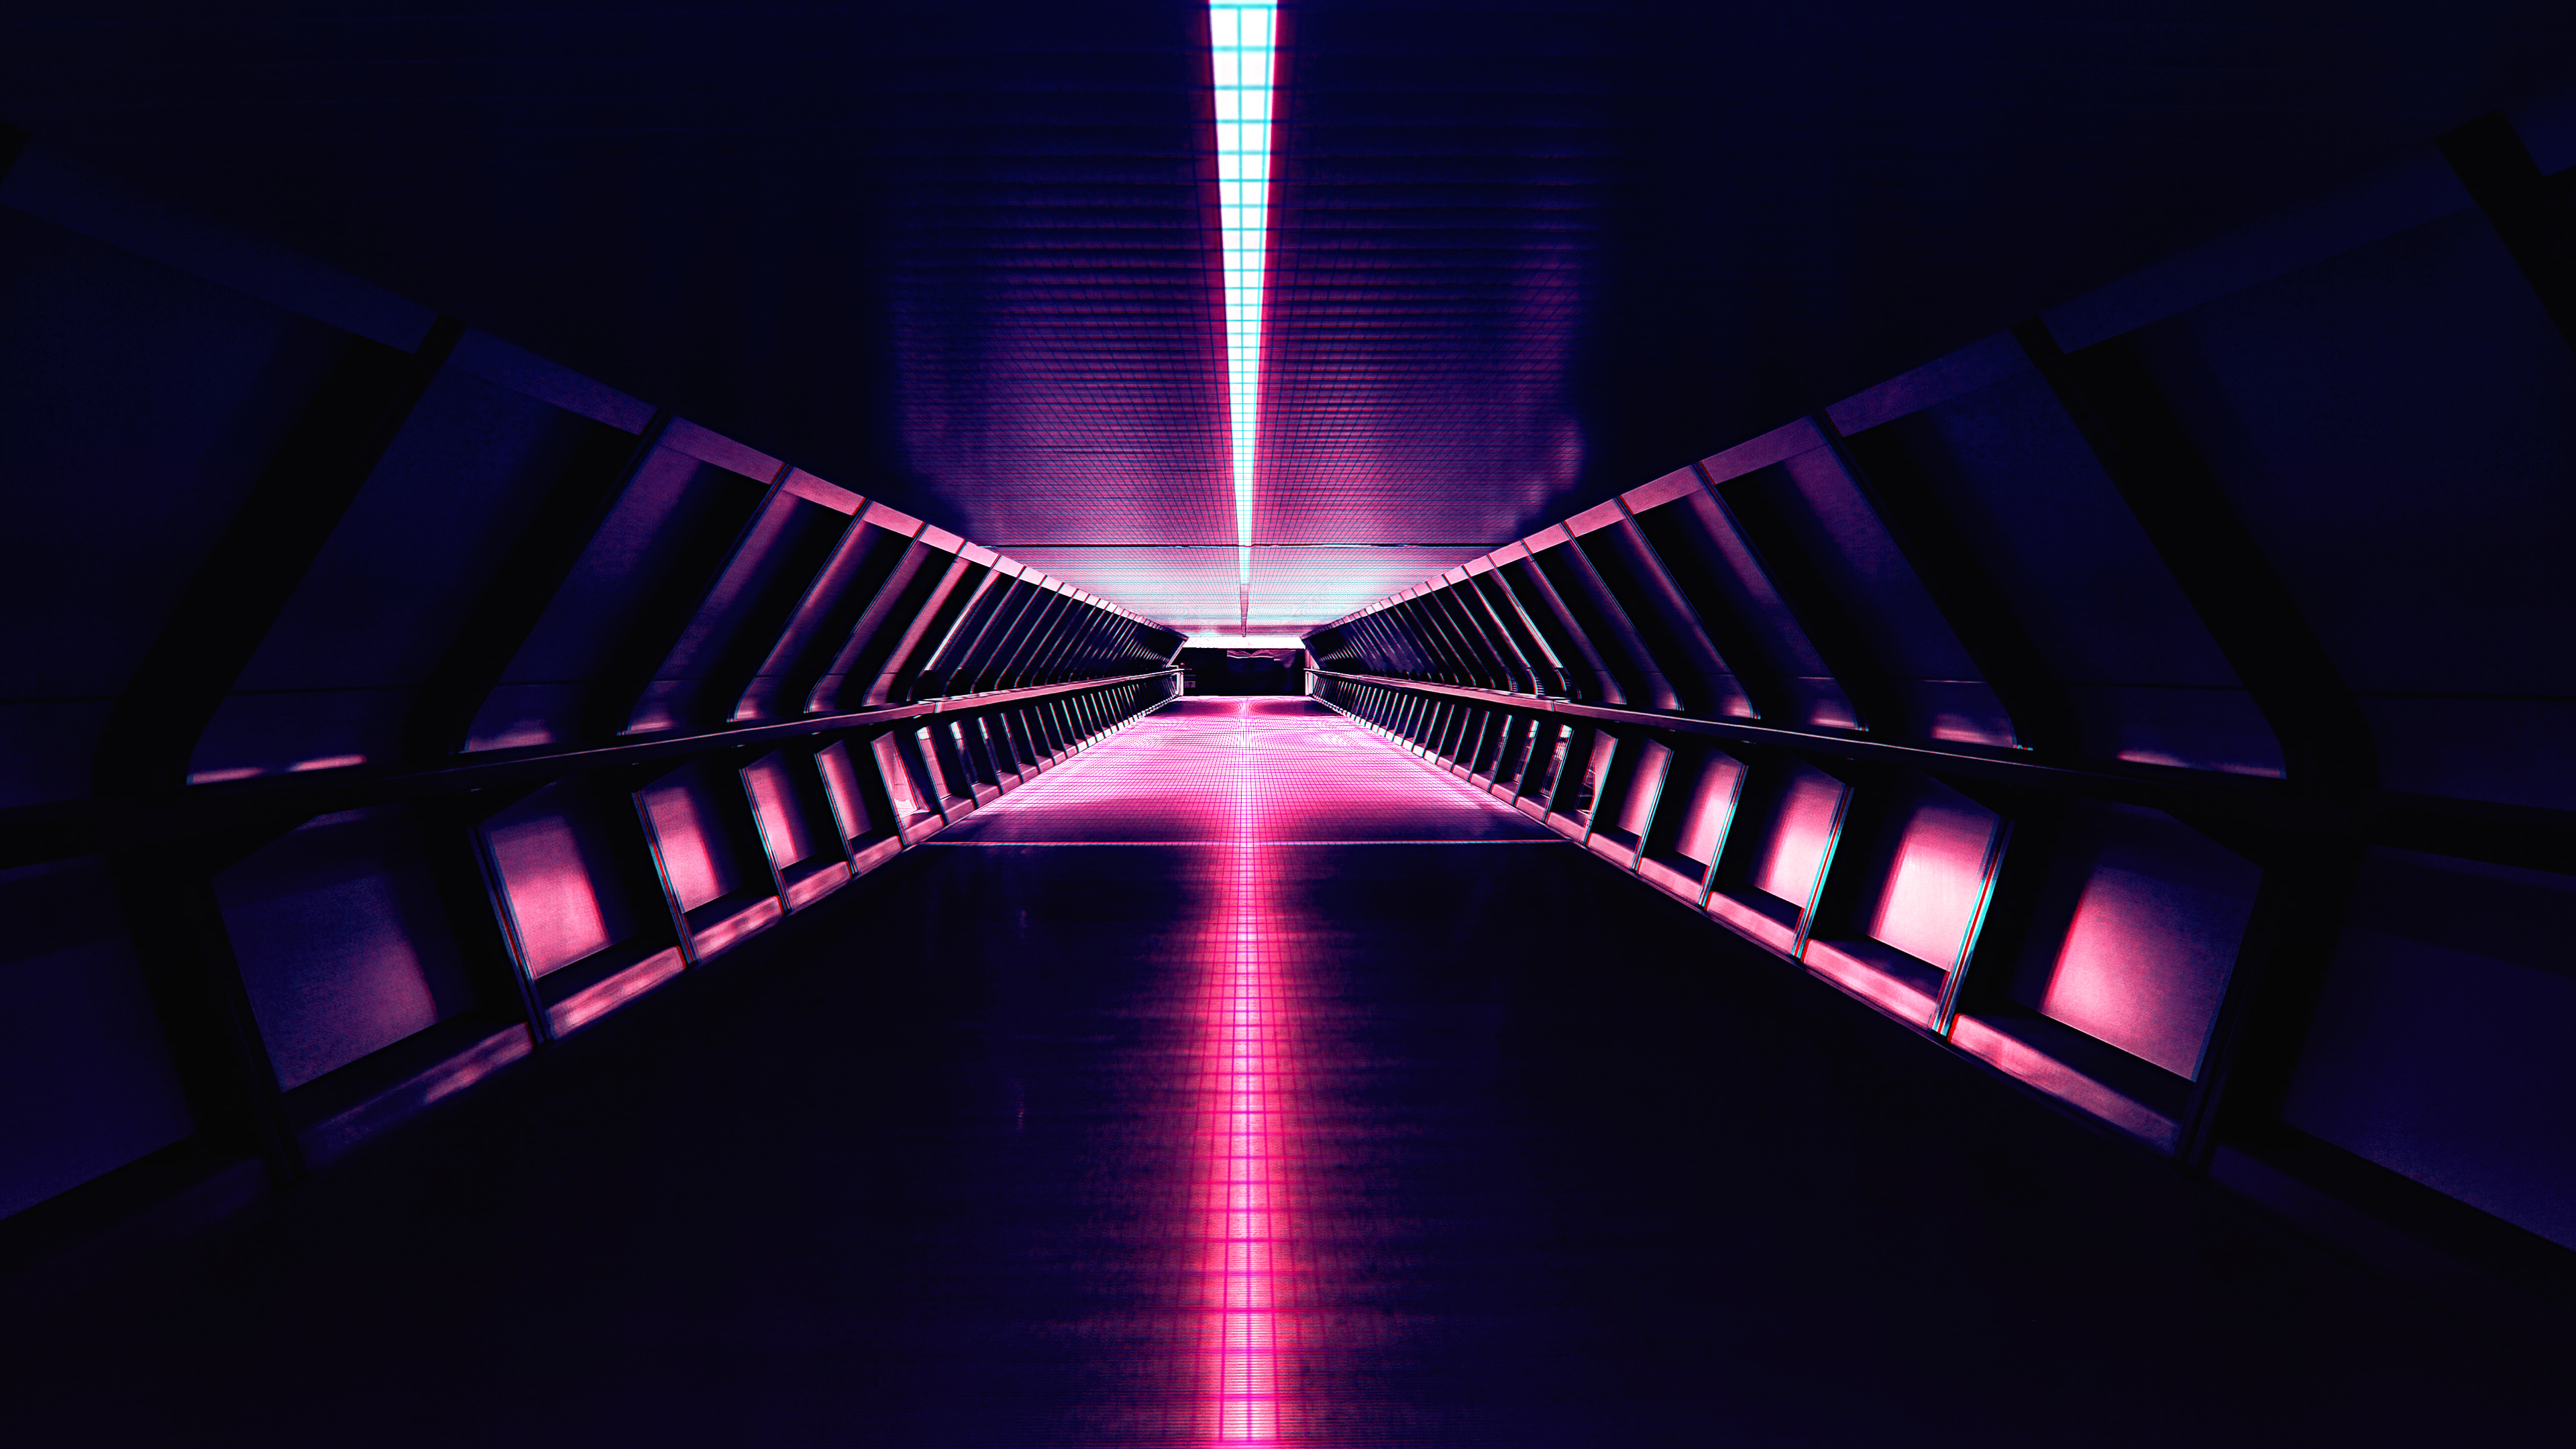 2560x1440 Synthwave Aesthetic Corridor 4k 1440p Resolution Hd 4k Wallpapers Images Backgrounds Photos And Pictures